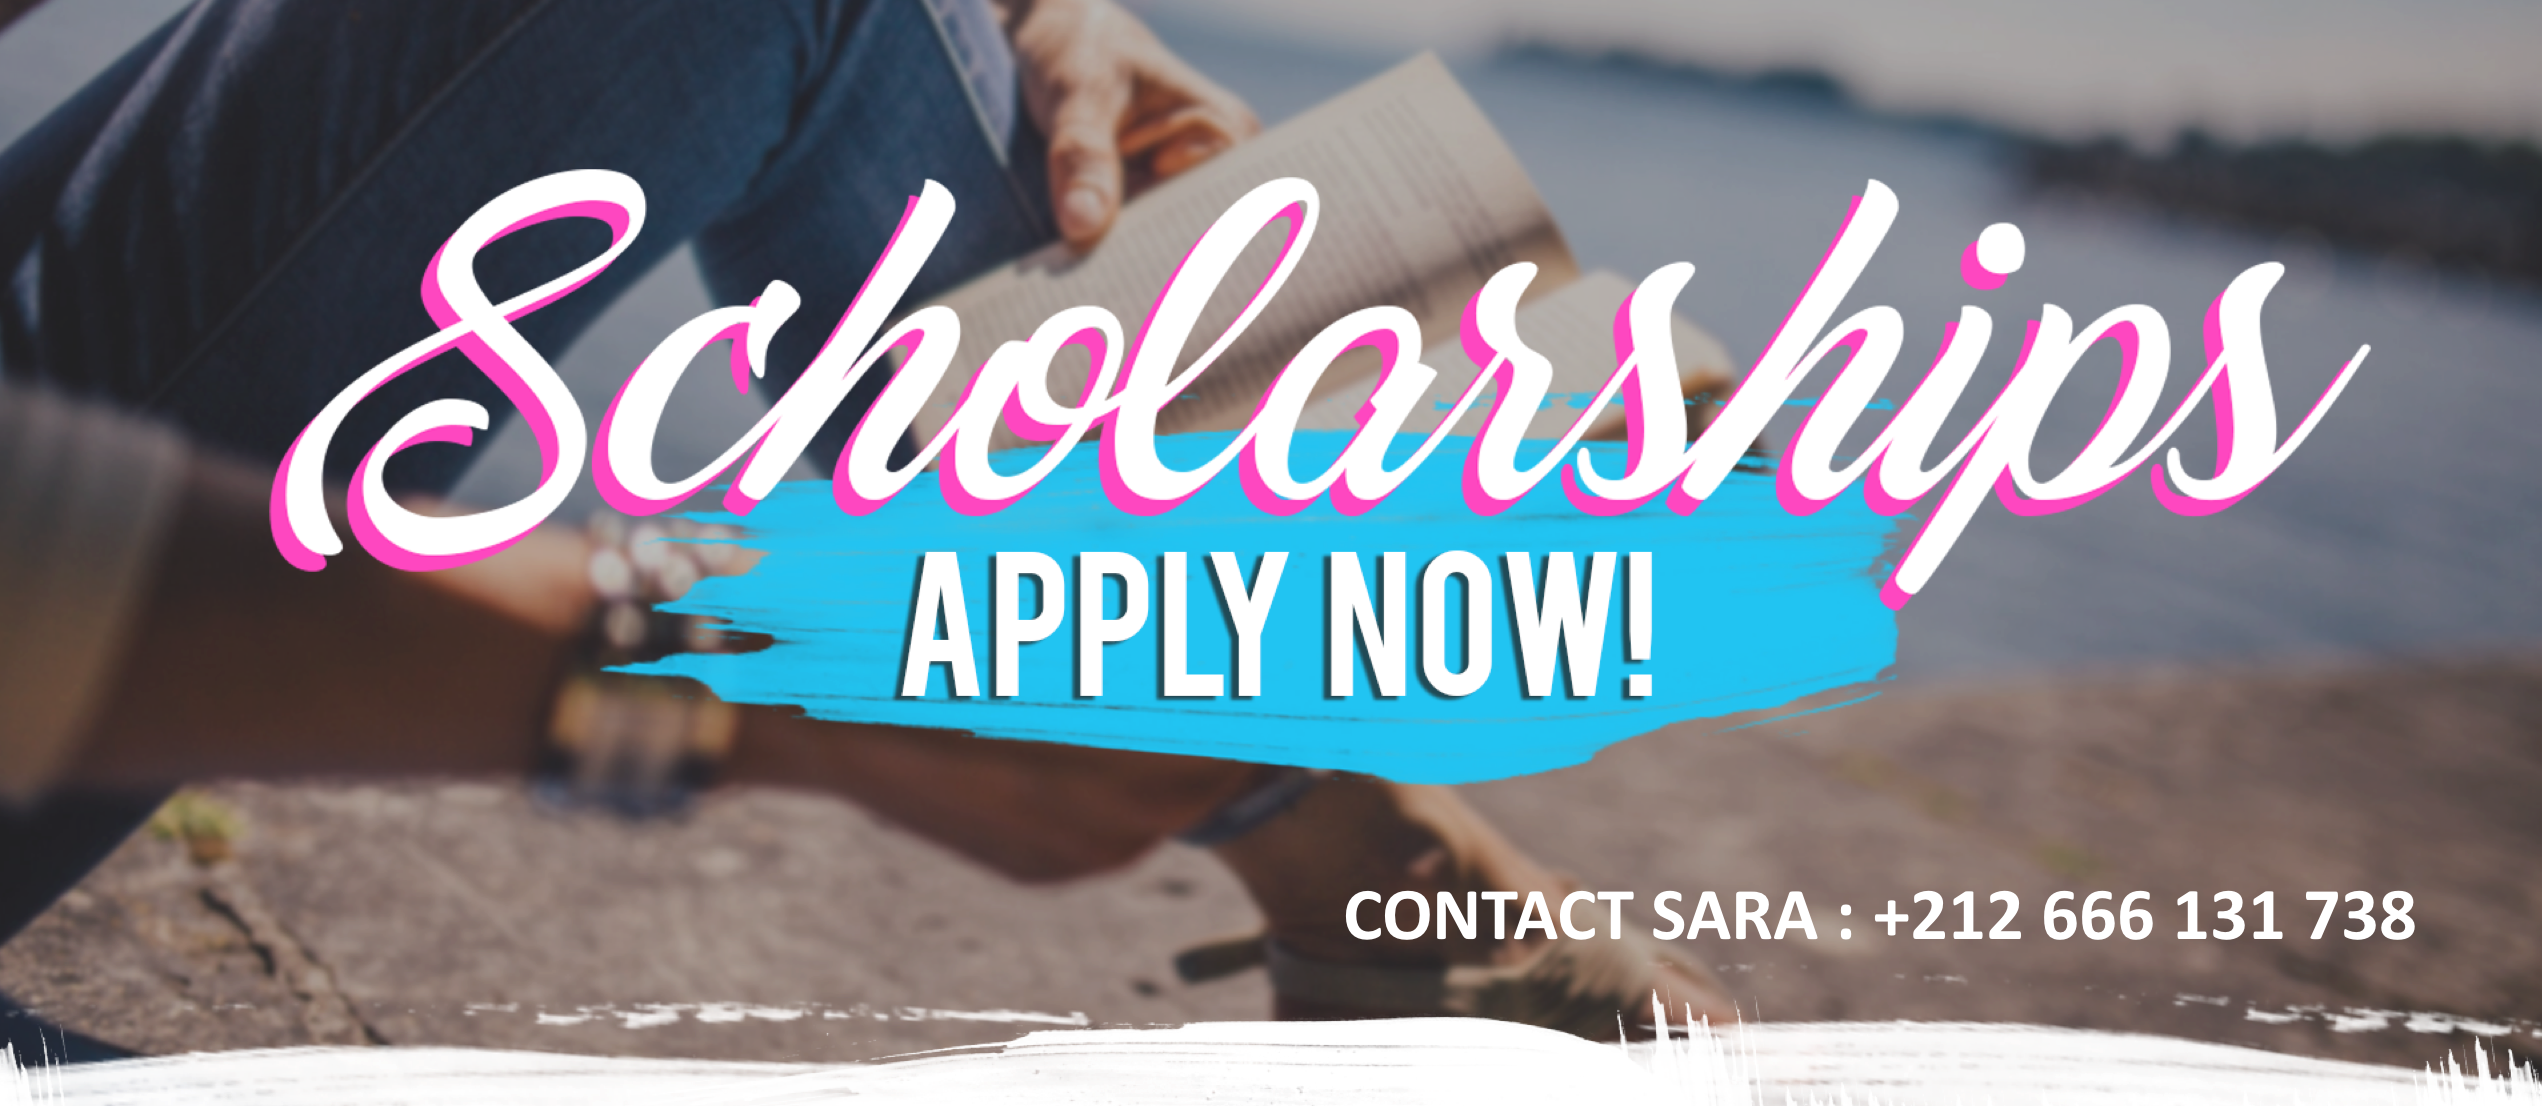 Scholarships - CasaEducation